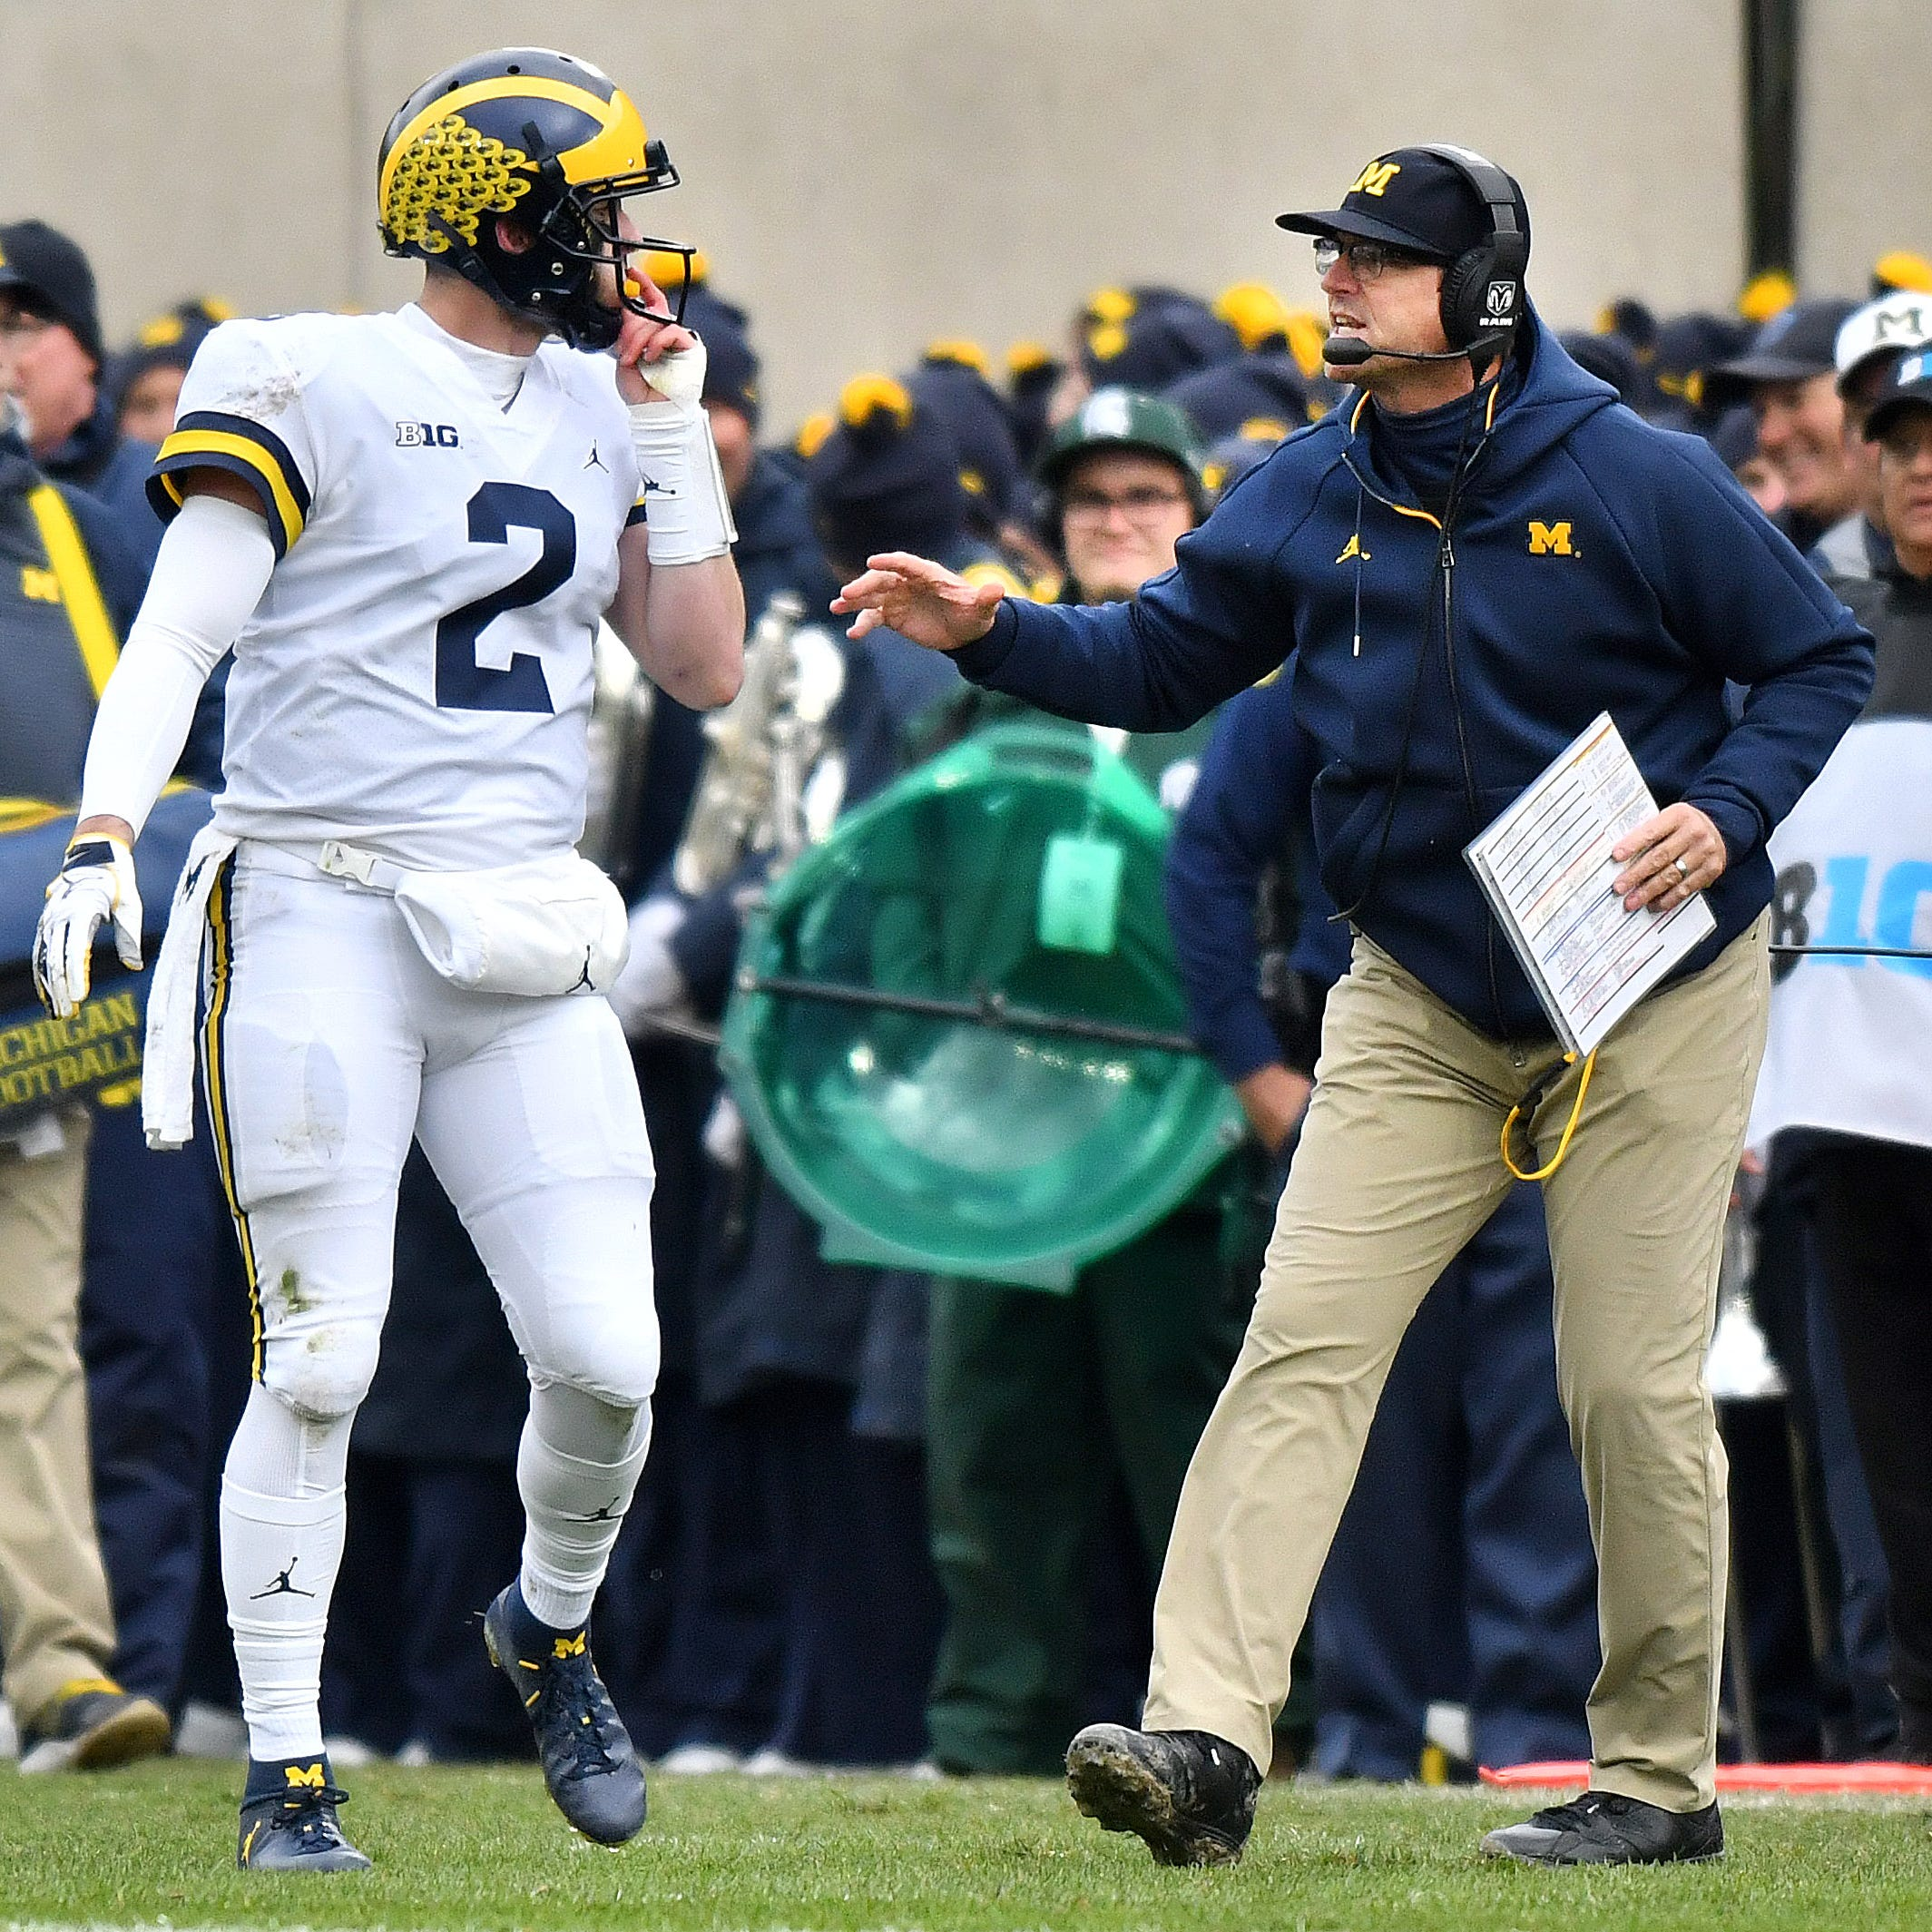 'Very strong resume': Michigan No. 5 in first CFP rankings